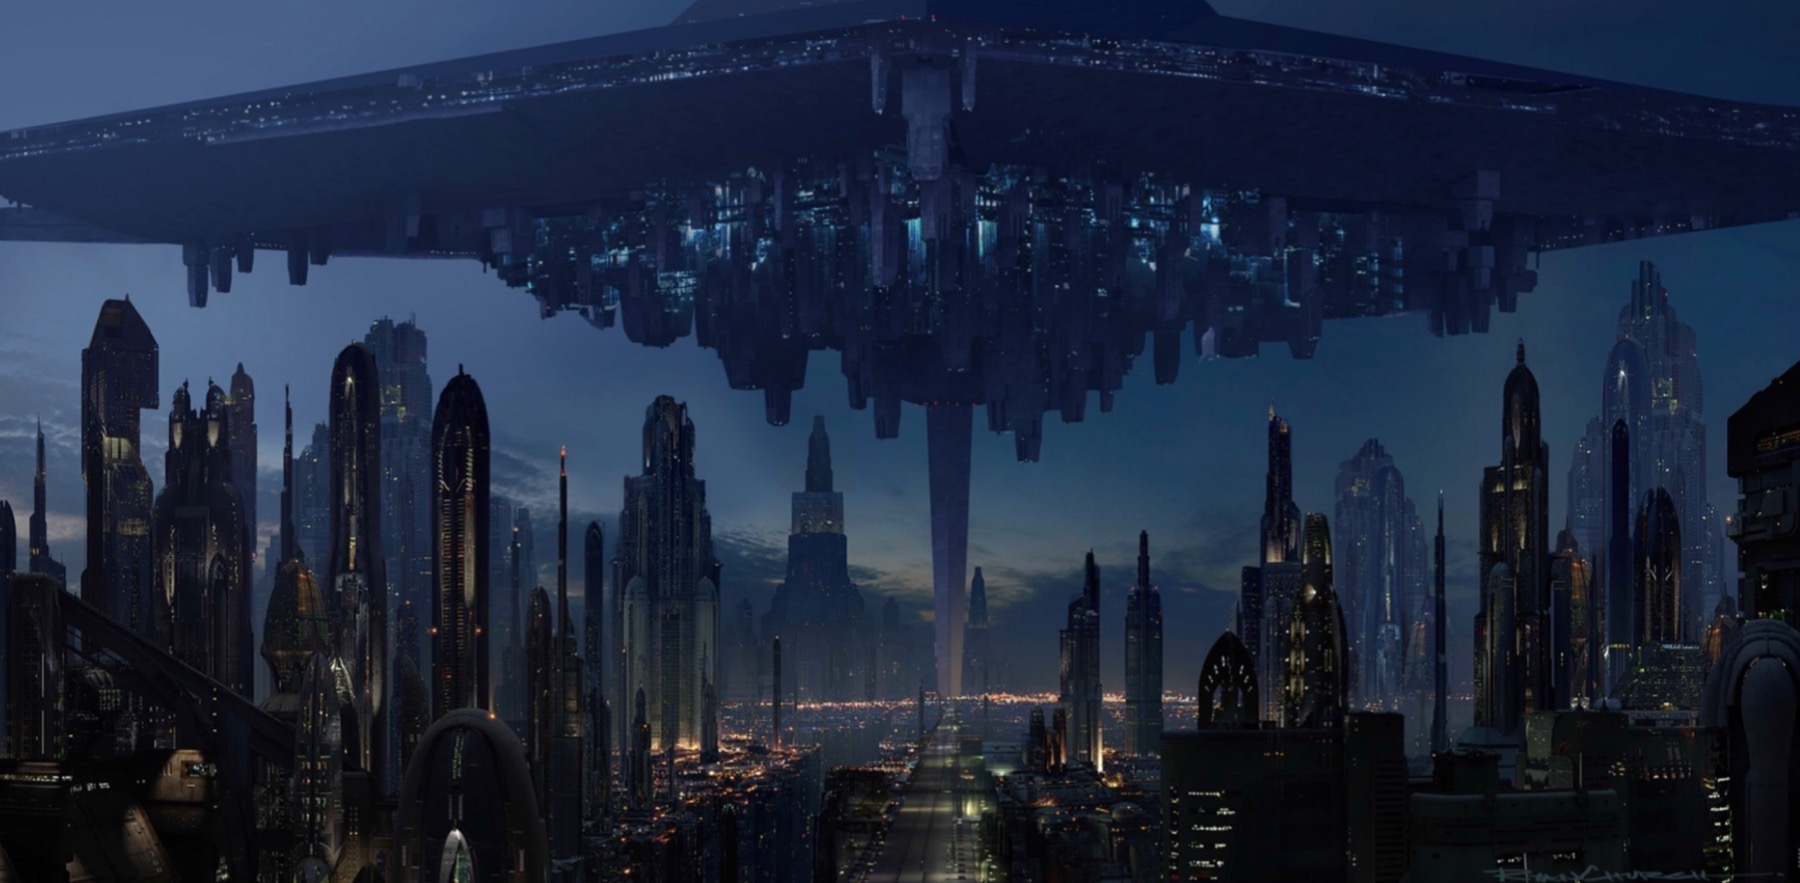 First ordered occupied coruscant